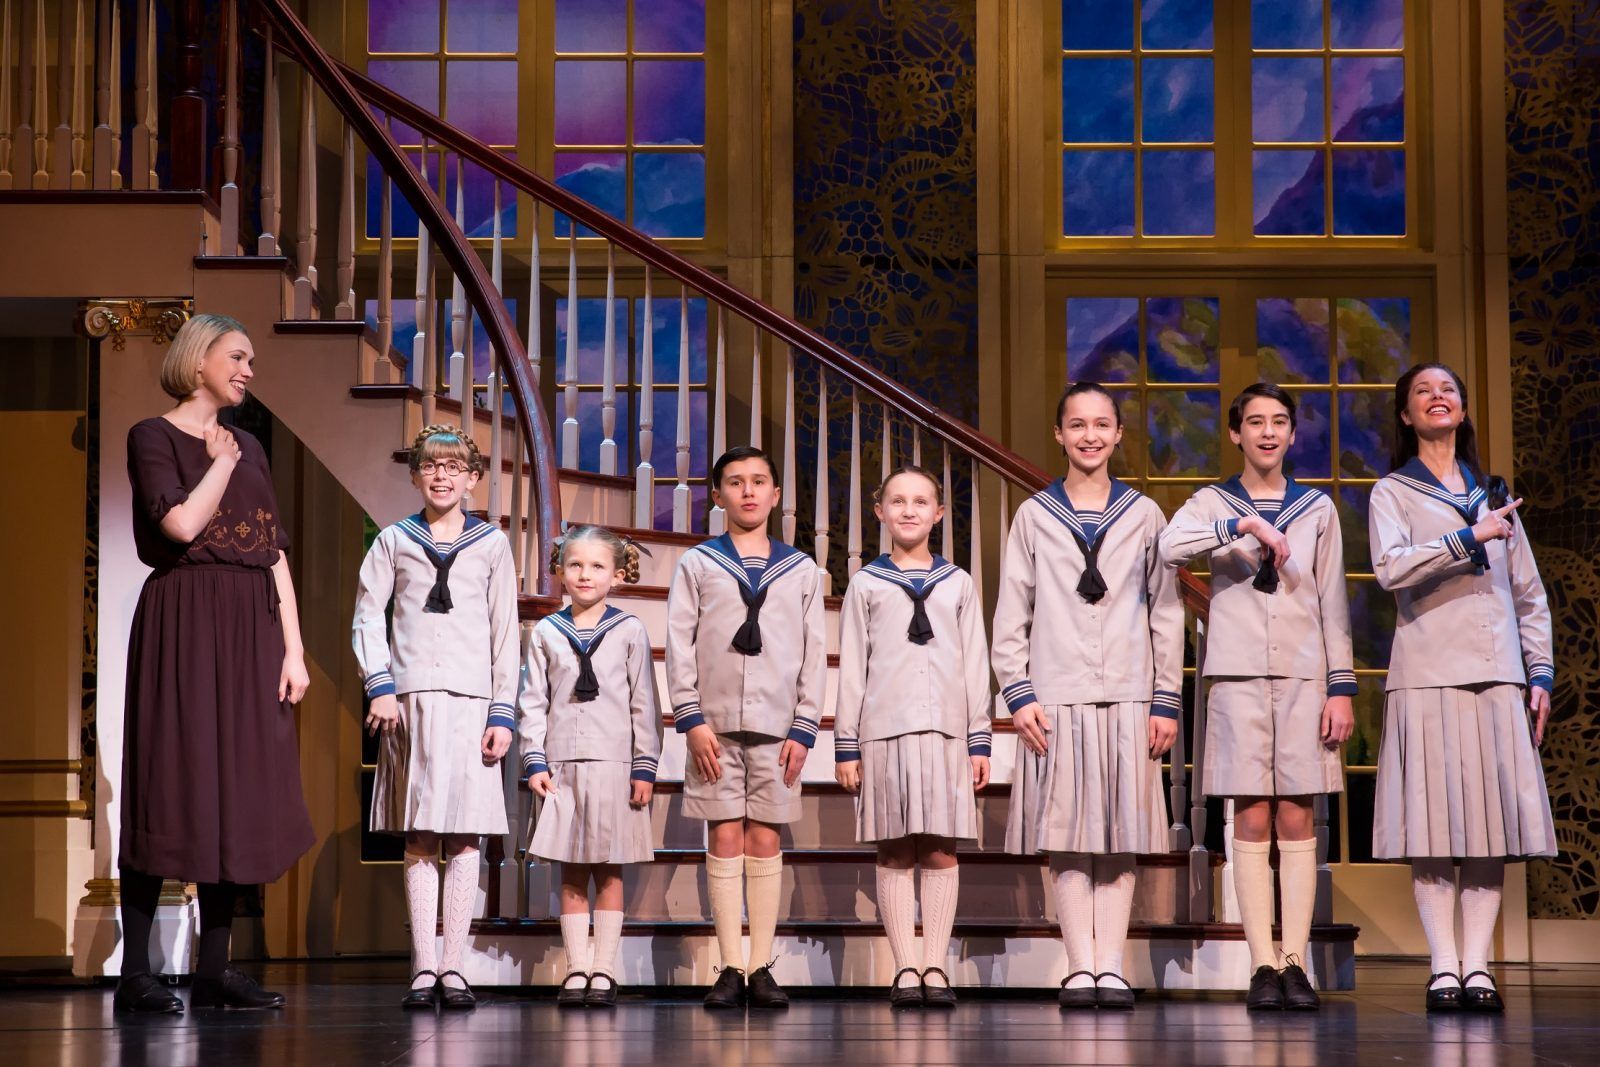 A splendid touring production of 'The Sound of Music' is at Shea's Performing Arts Center.